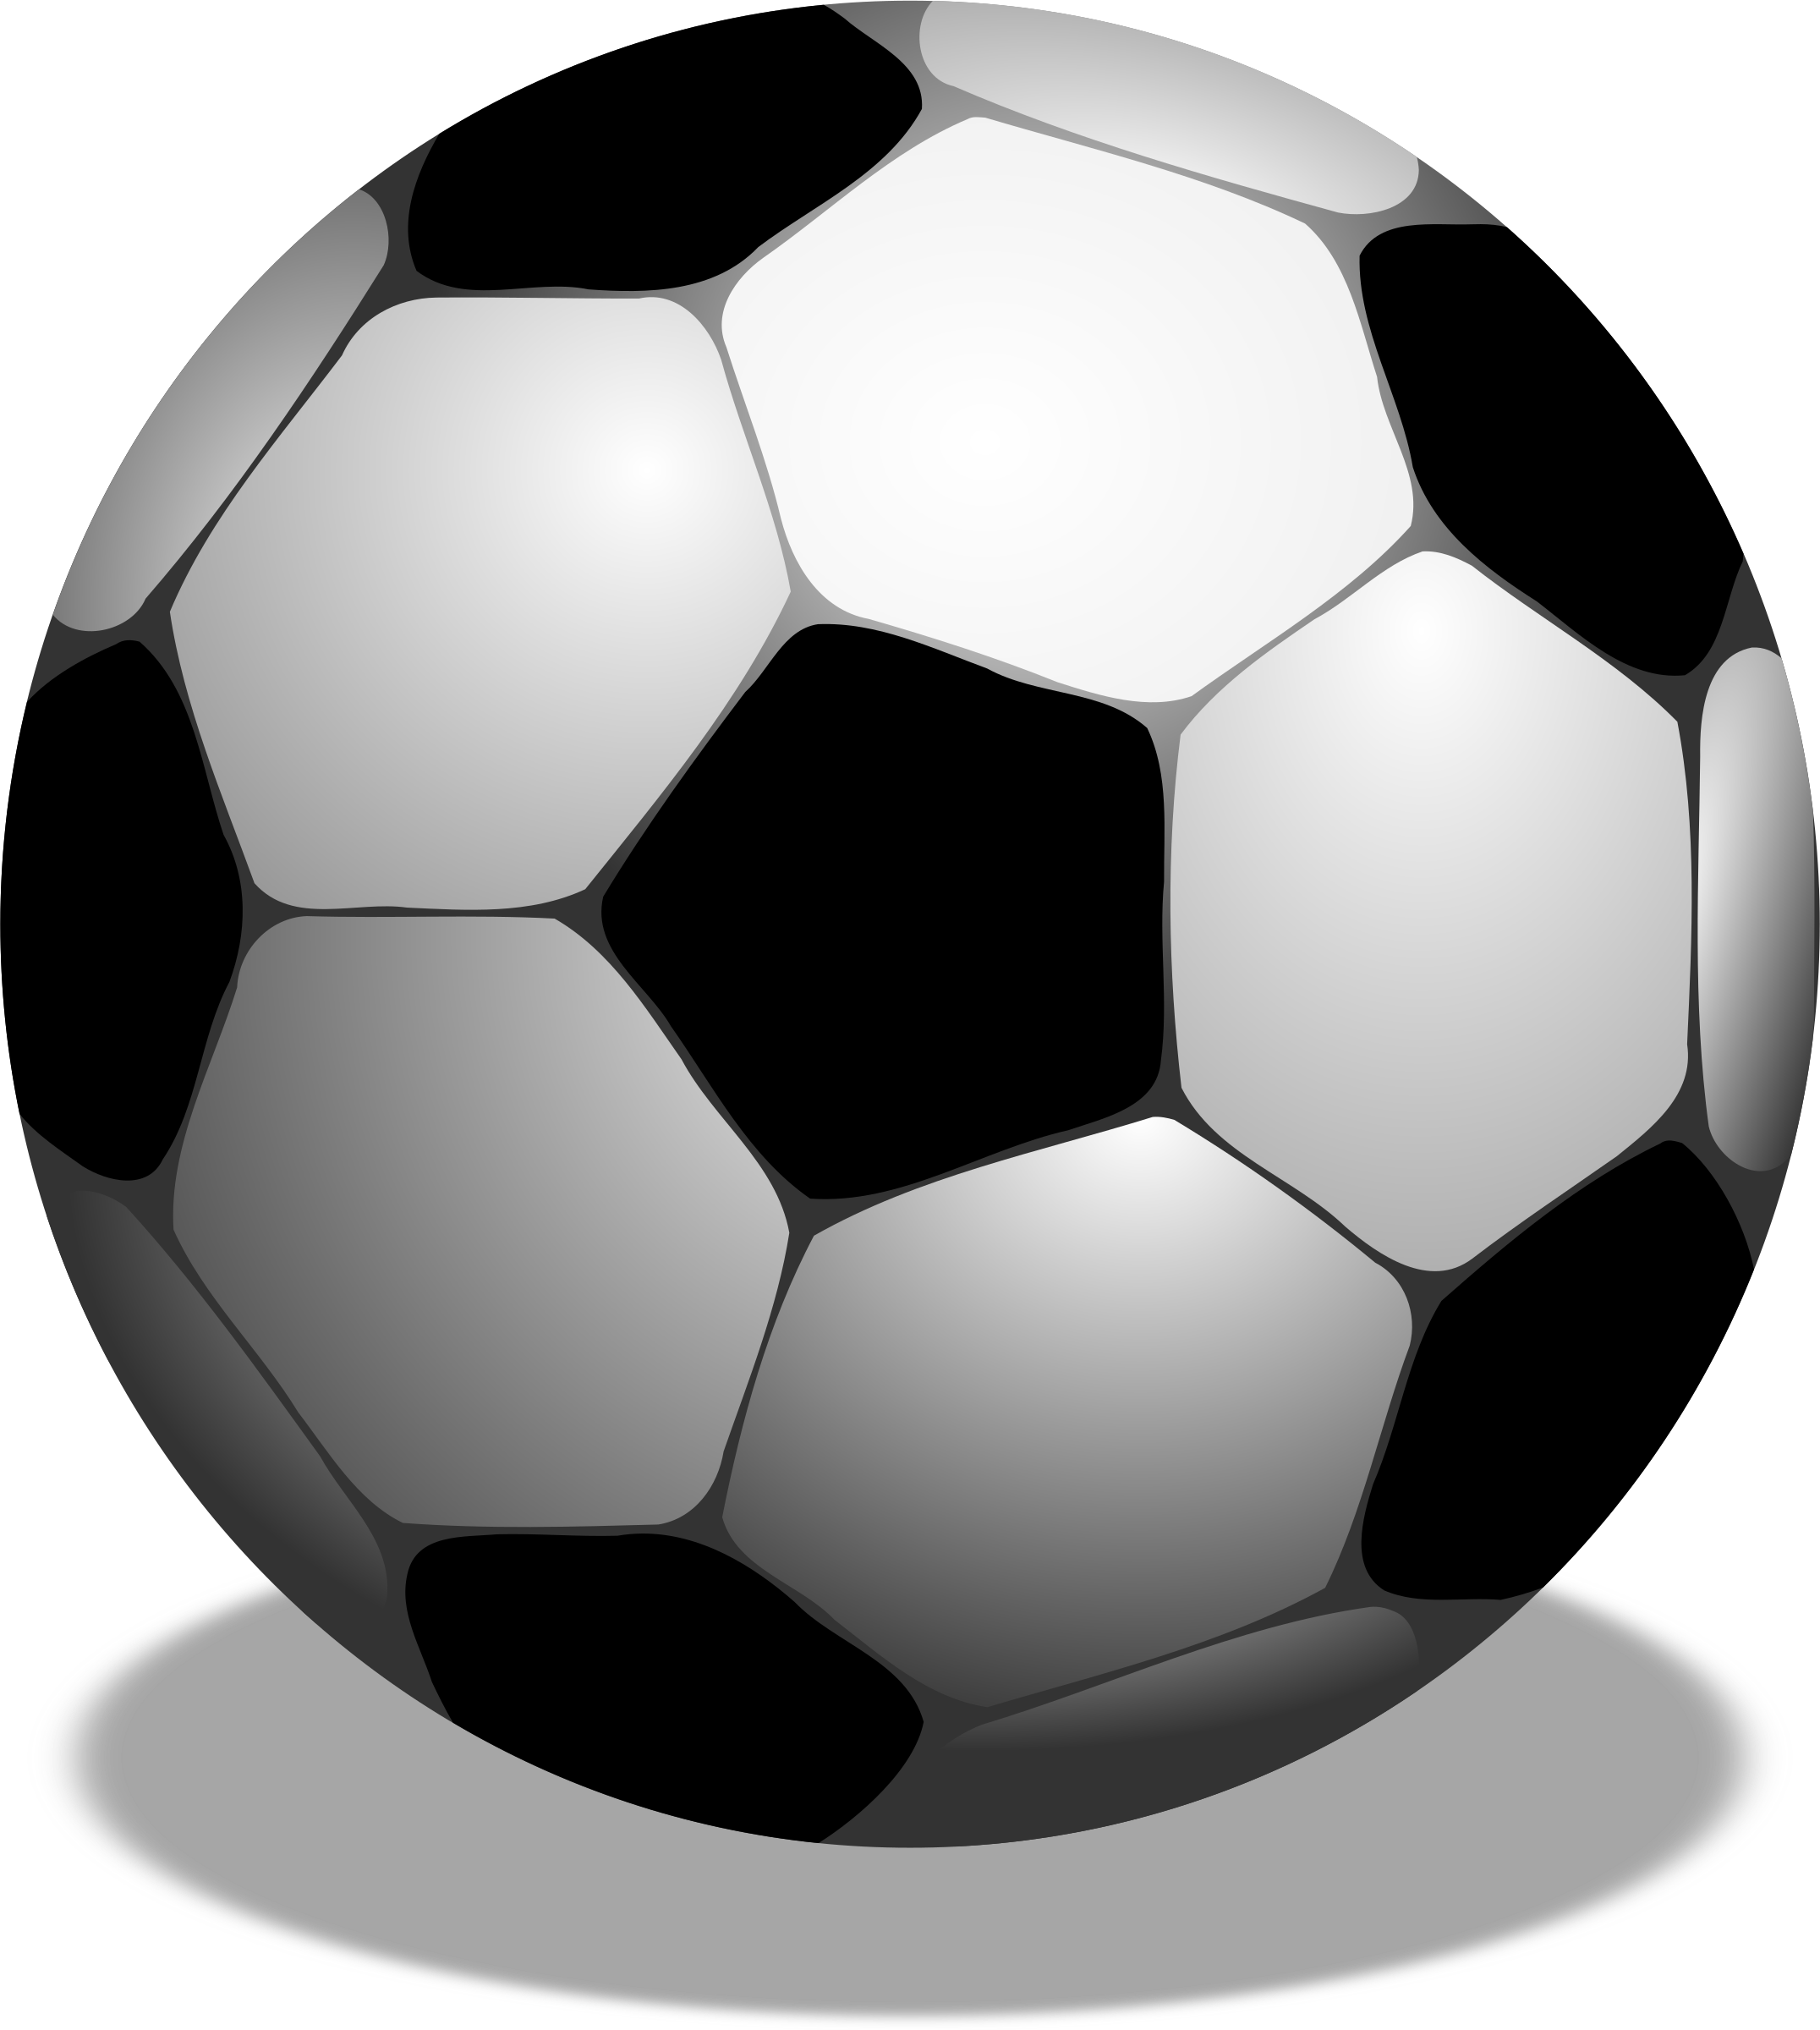 3d football clipart image black and white stock Clipart - Football, futbolo kamuolys image black and white stock